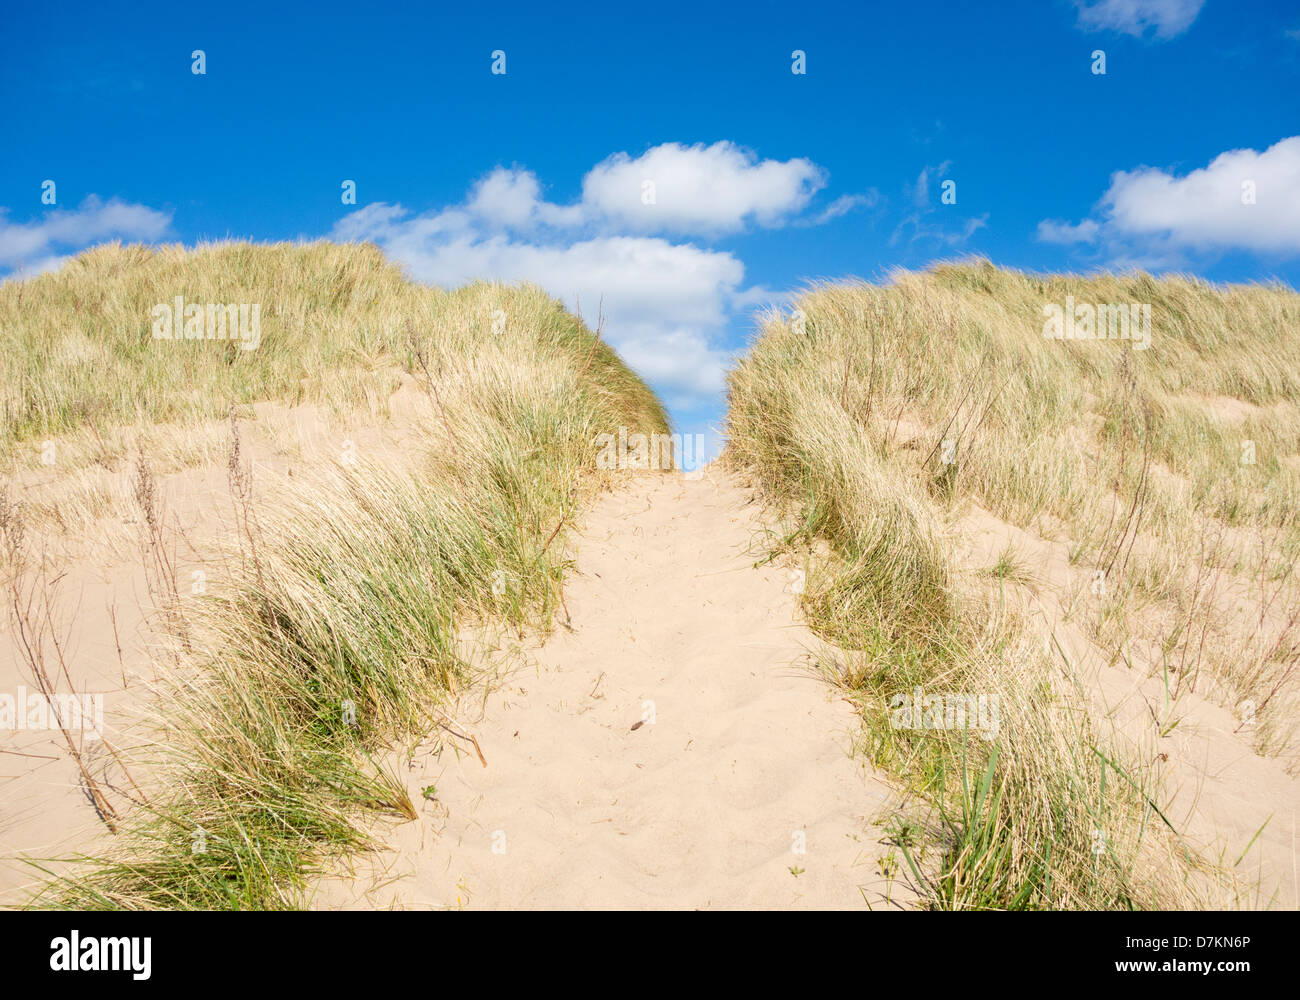 Footpath through dunes leading to beach at Teesmouth Natural Nature Reserve near Seaton Carew, Hartlepool, England, - Stock Image